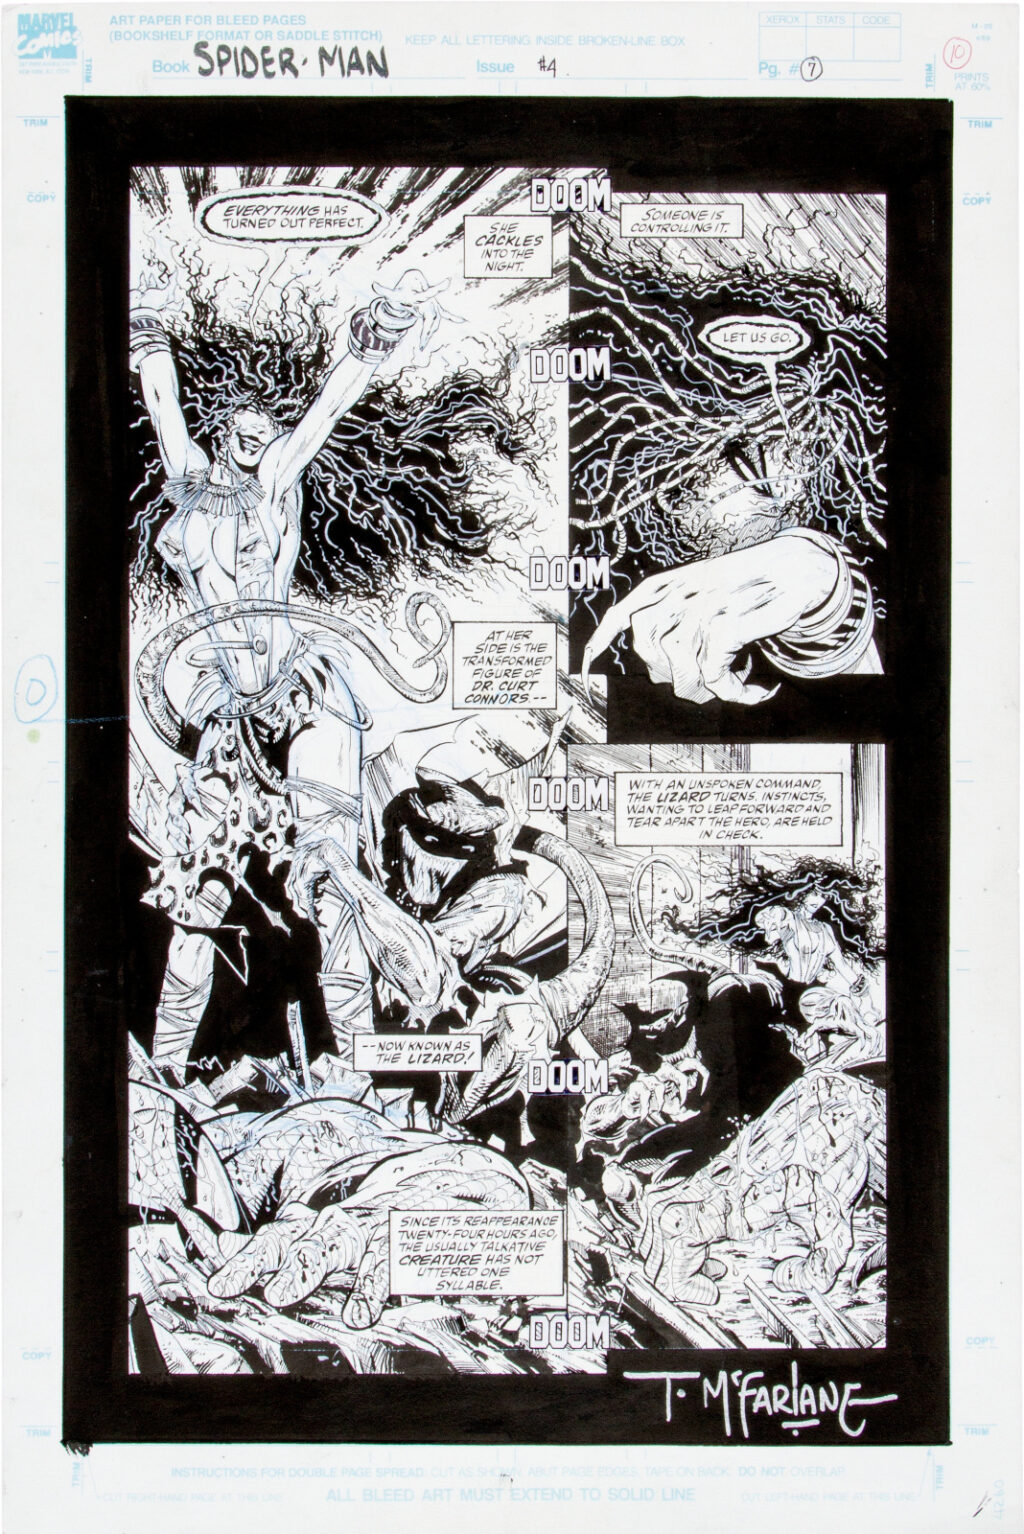 Spider Man issue 4 page 7 by Todd McFarlane